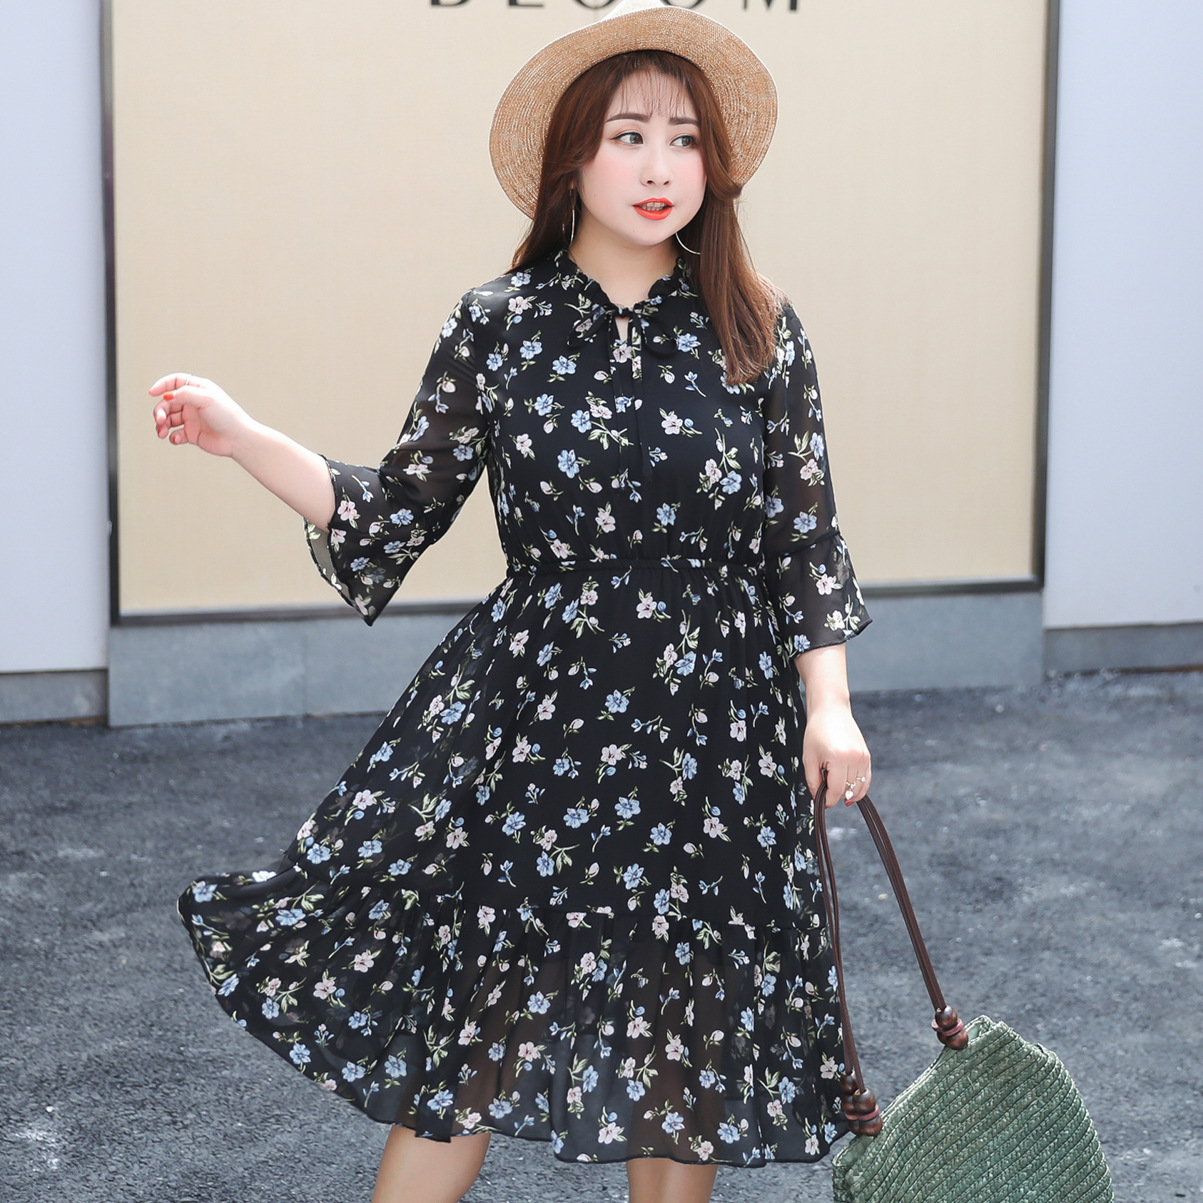 2019 Summer Wear New Style Extra Large WOMEN'S Dress Large GIRL'S Plus-sized Floral-Print Chiffon Full Body Dress A058